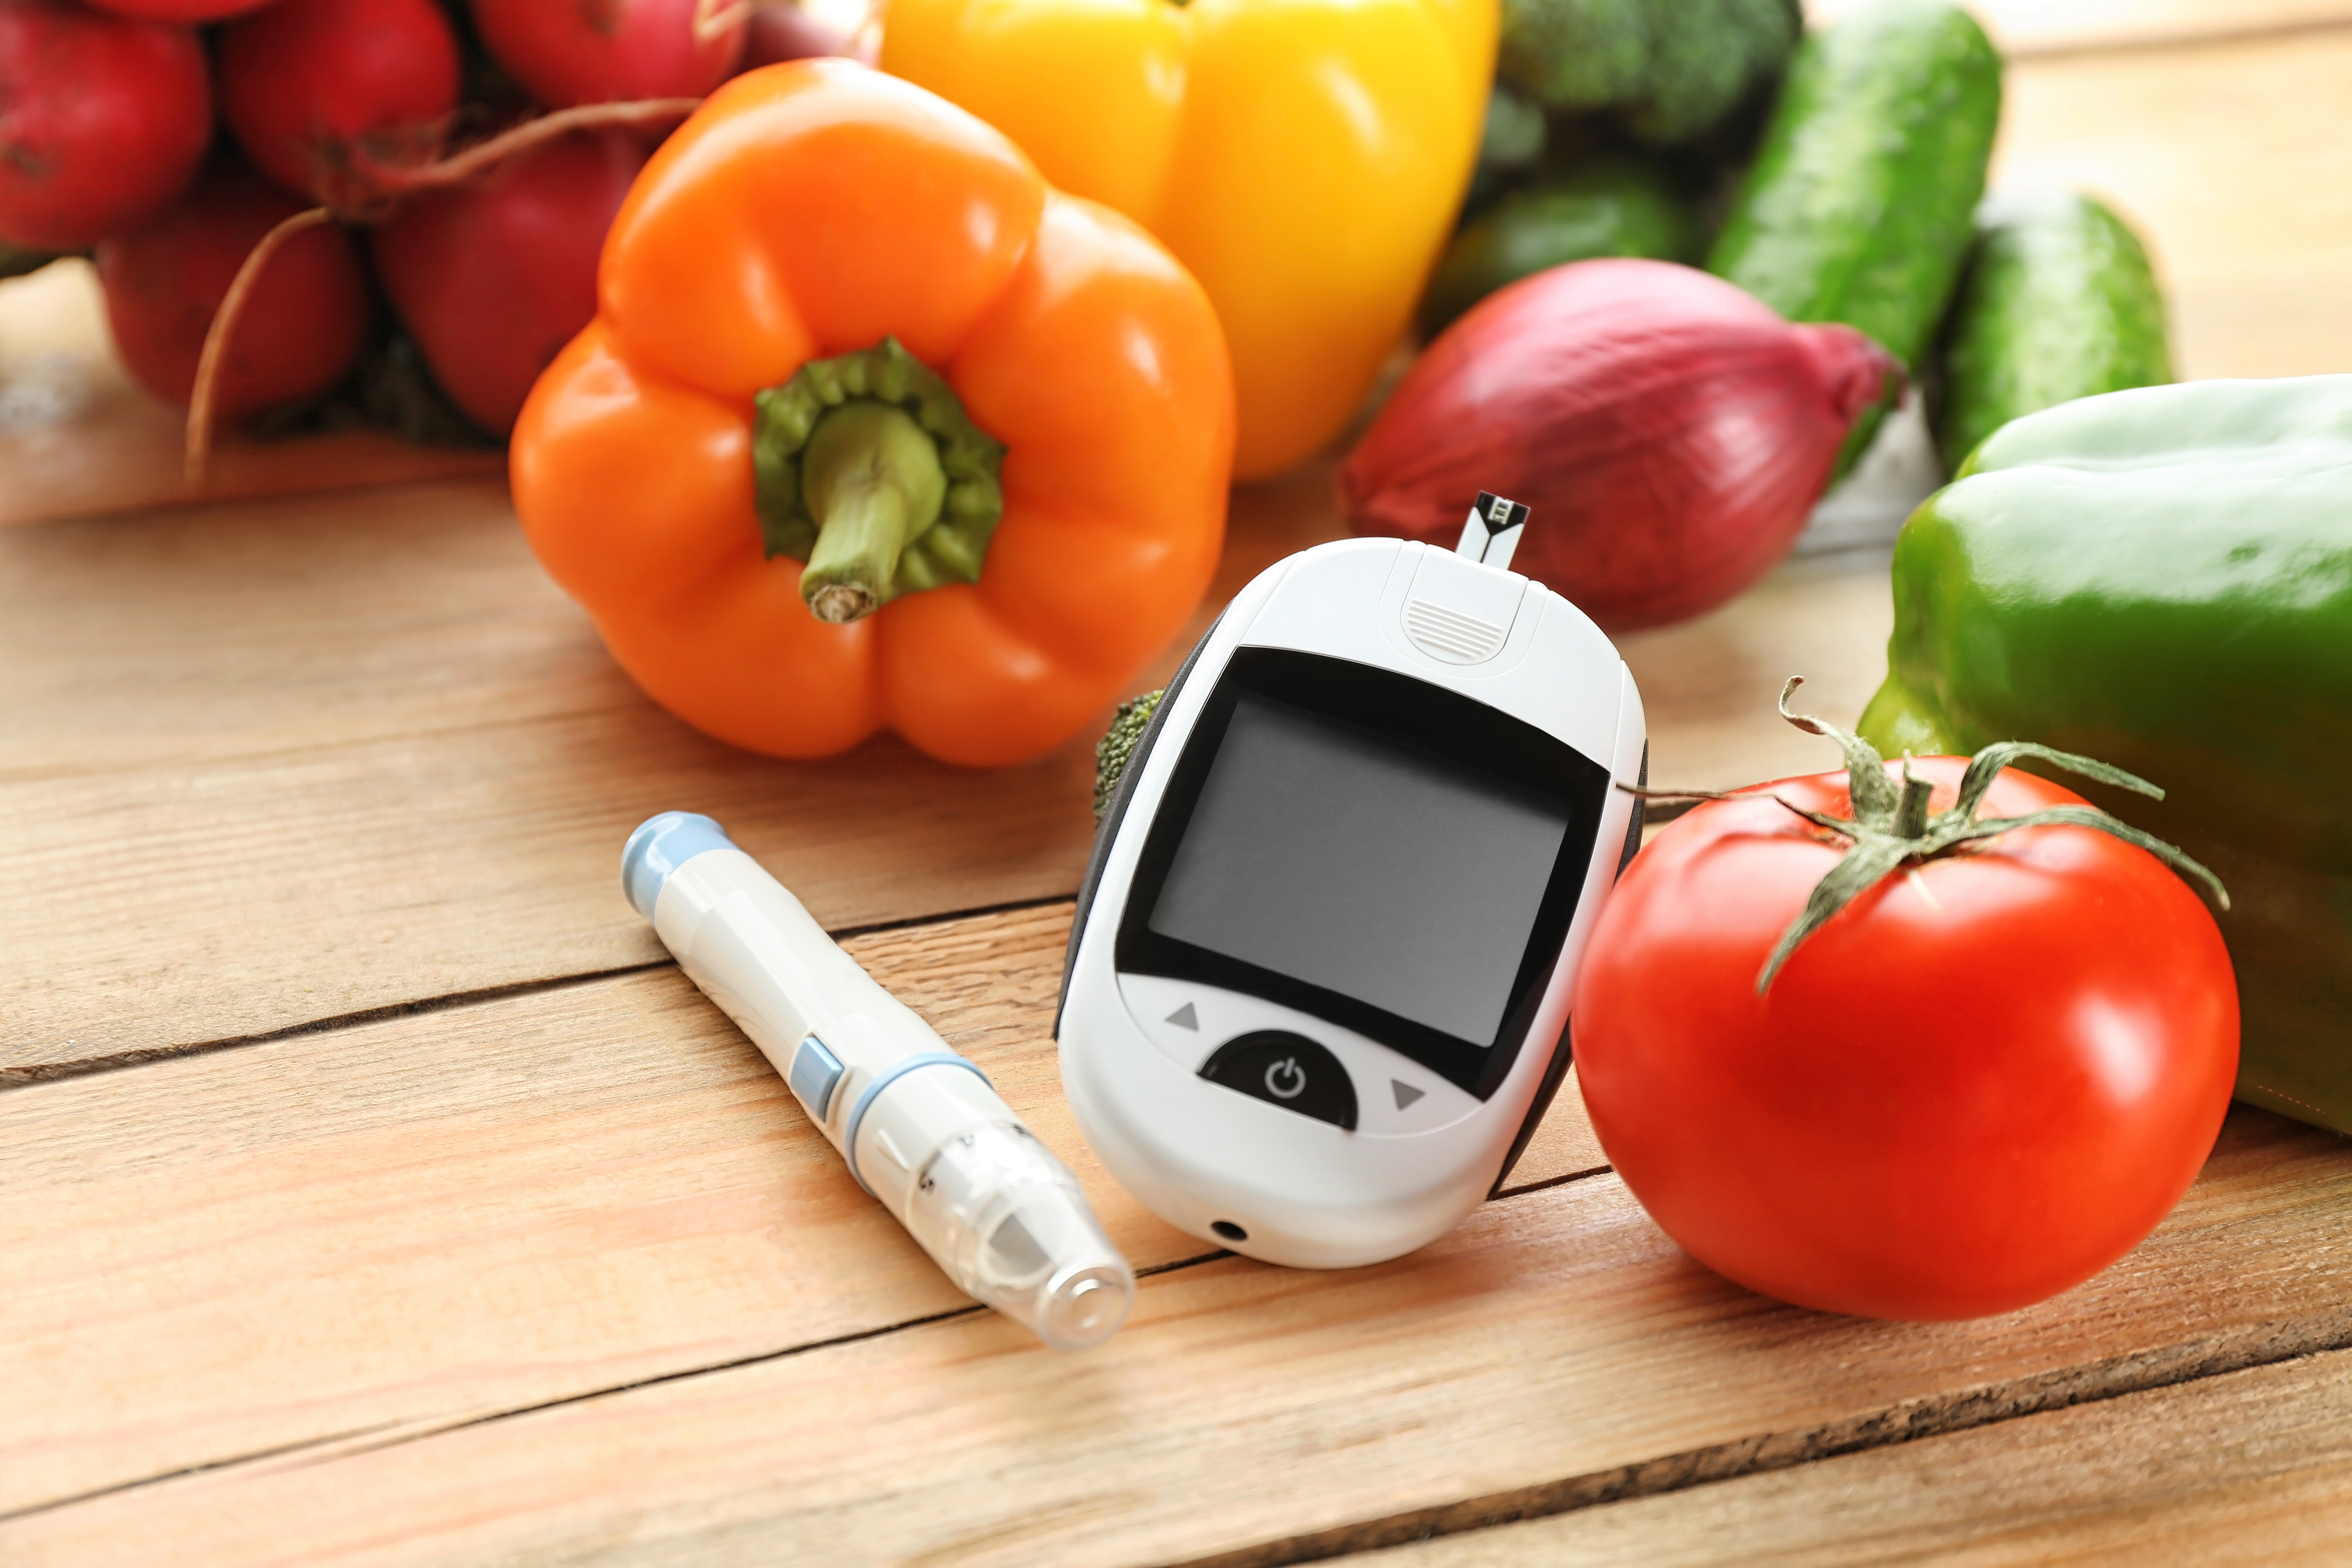 diabetes monitor on table with vegetables